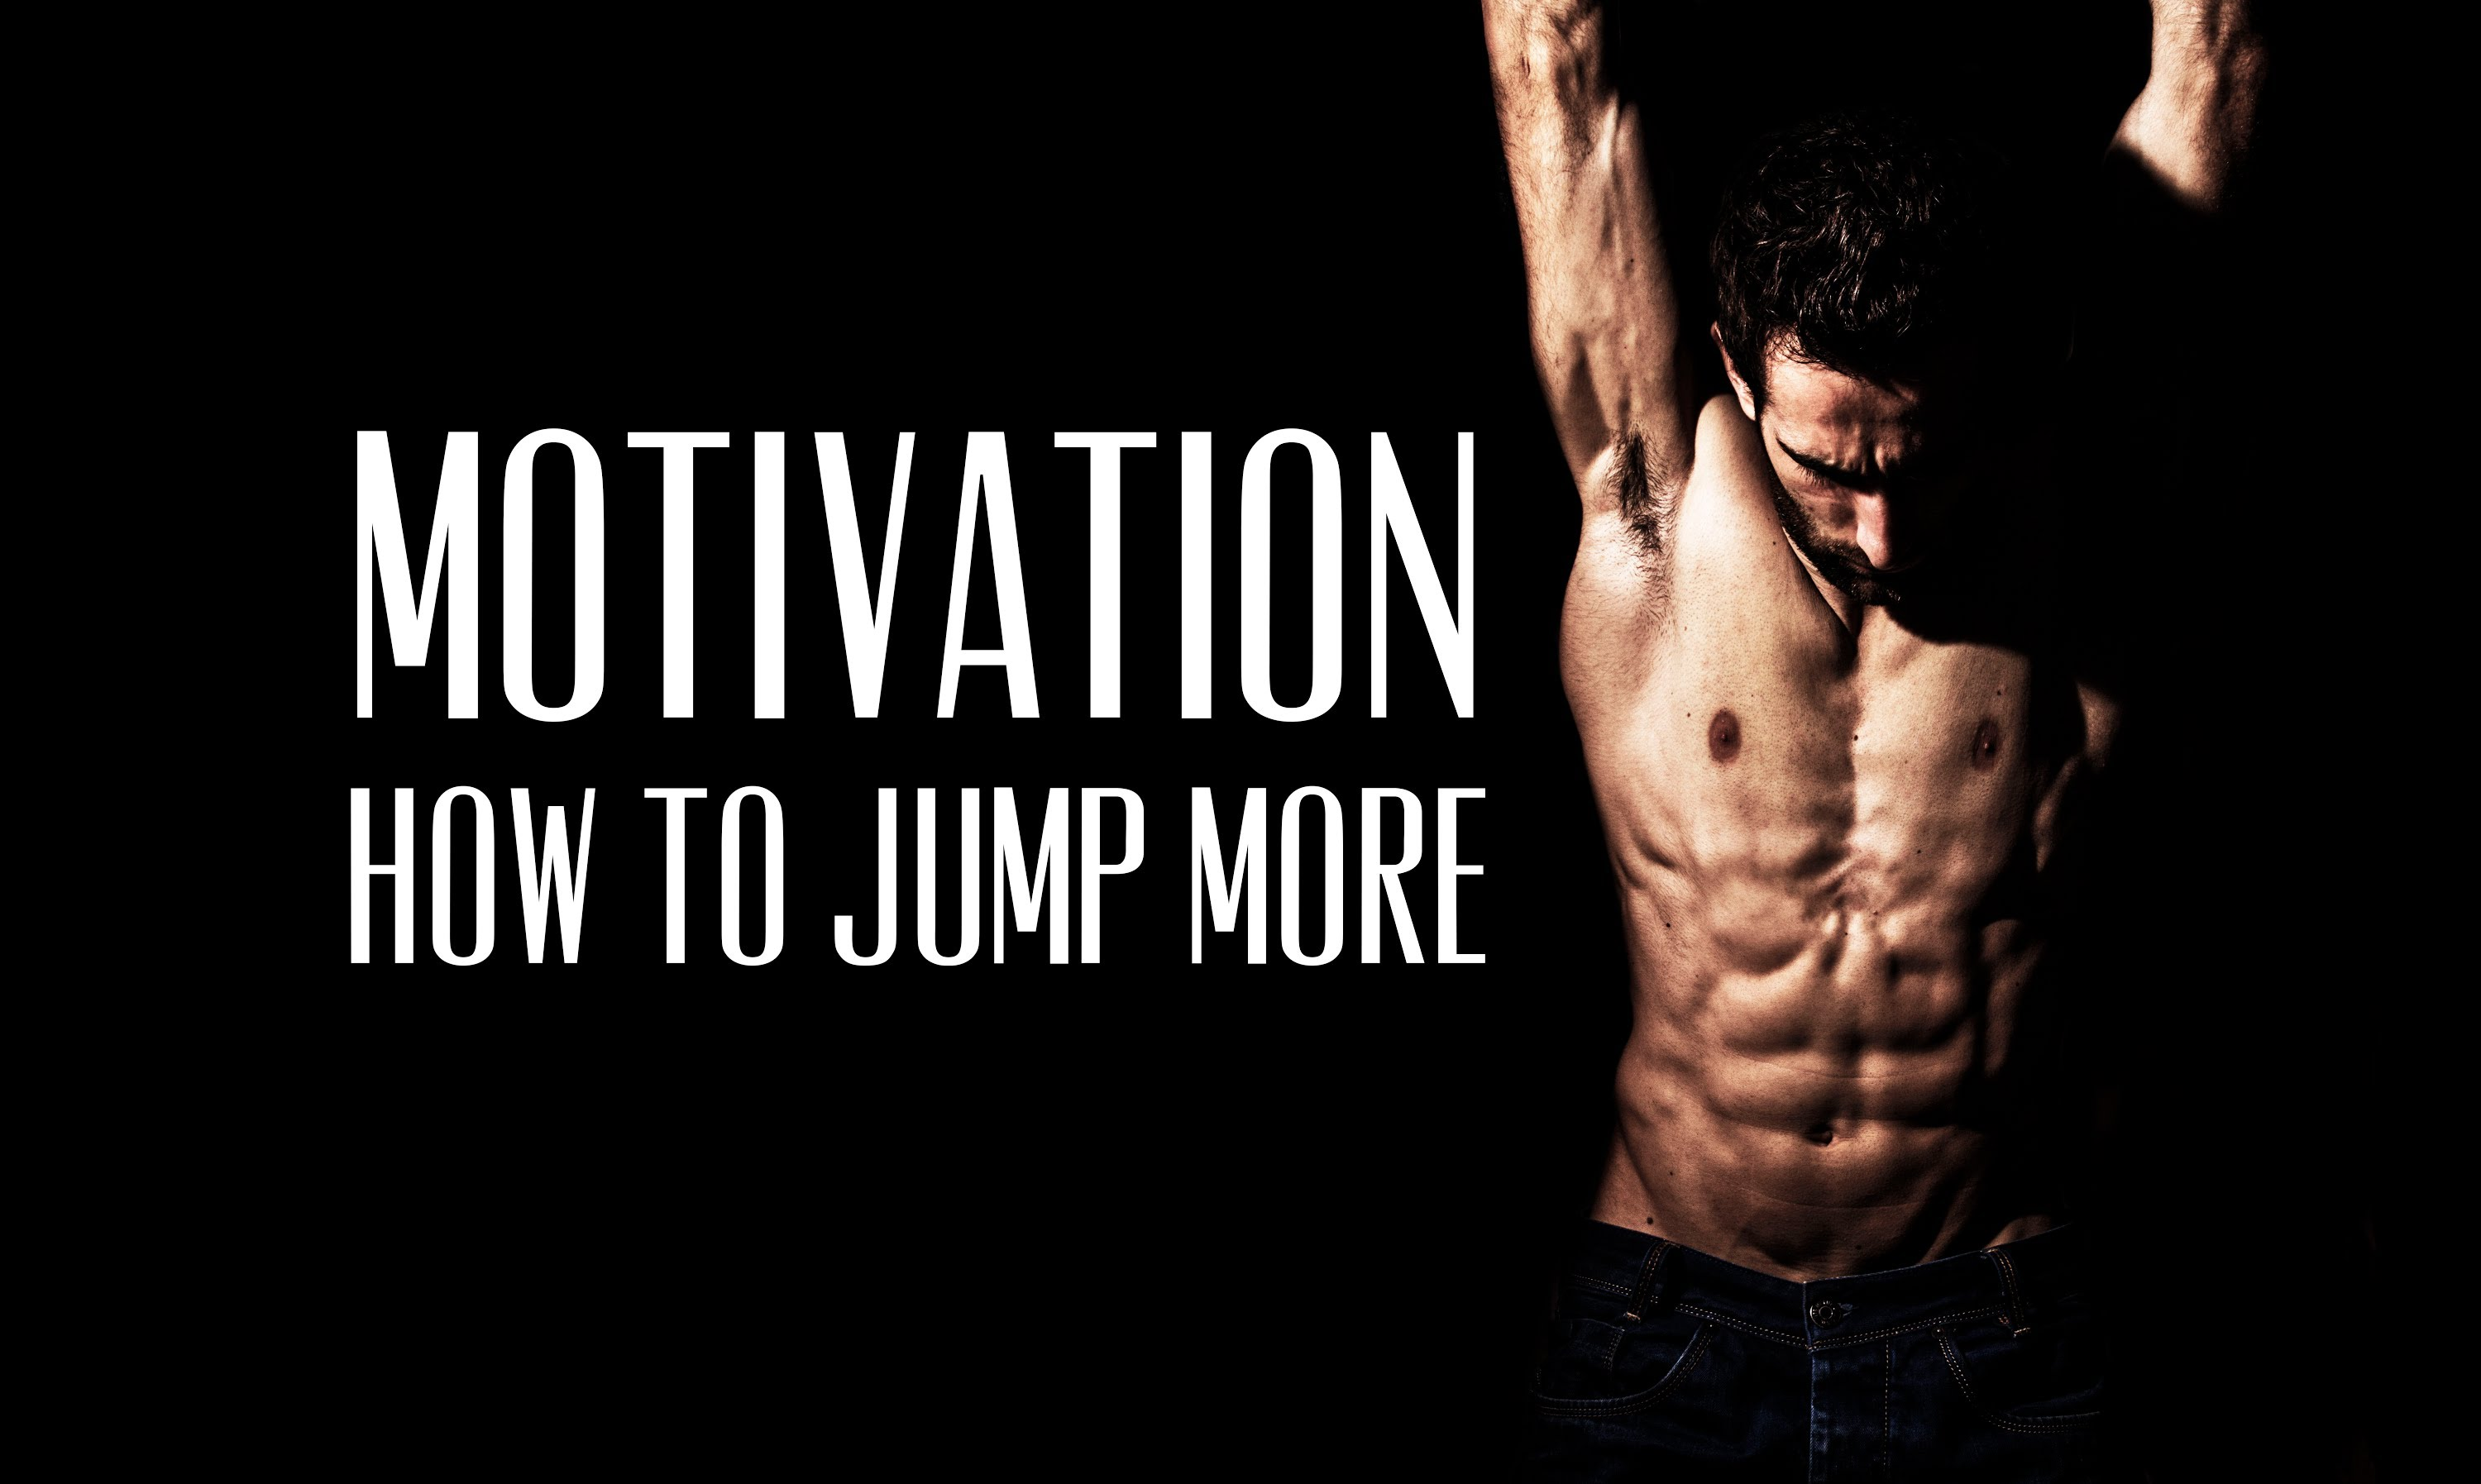 Motivational Workout Wallpaper Motivational Workout Wallpaper Motivational  Workout Wallpaper Motivational Workout Wallpaper ...